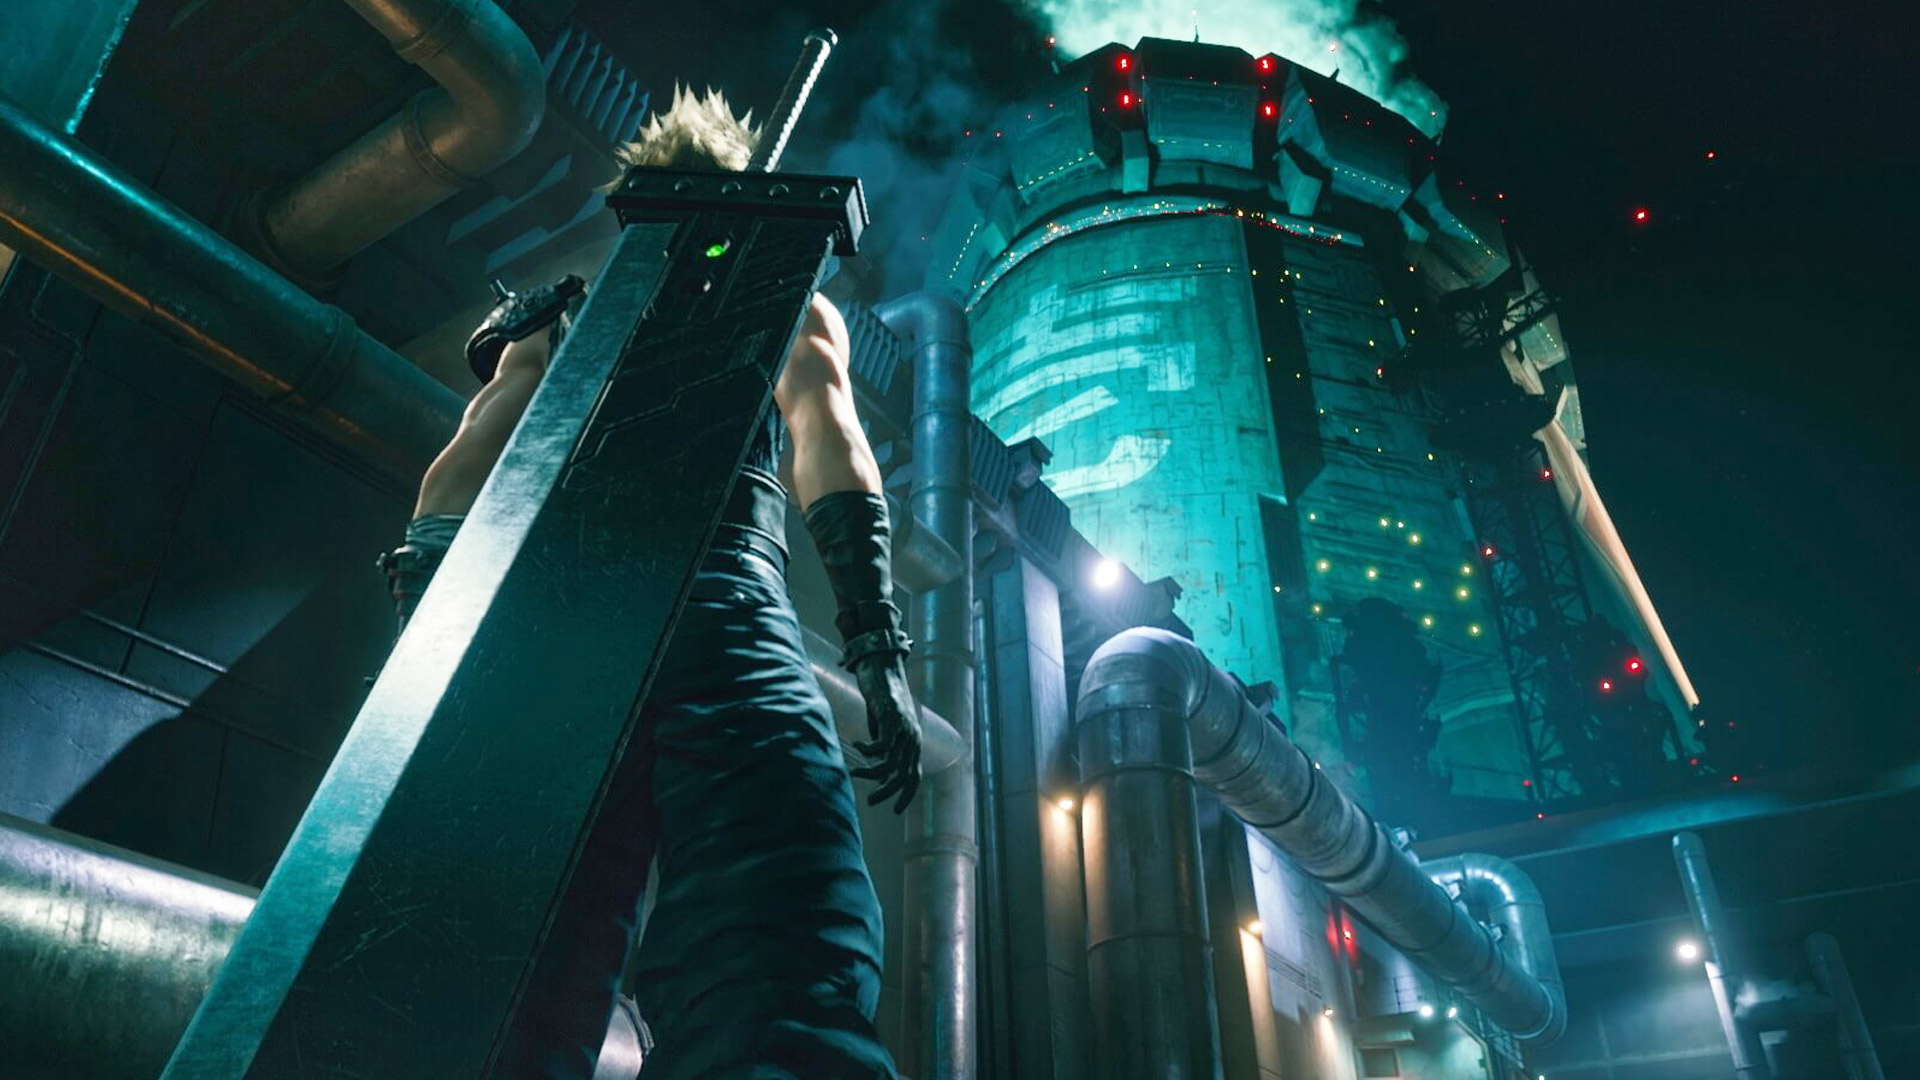 The State of Gaming April 2020: Final Fantasy 7 Remake, Switch Sells Out, Minecraft RTX and Trials of Mana